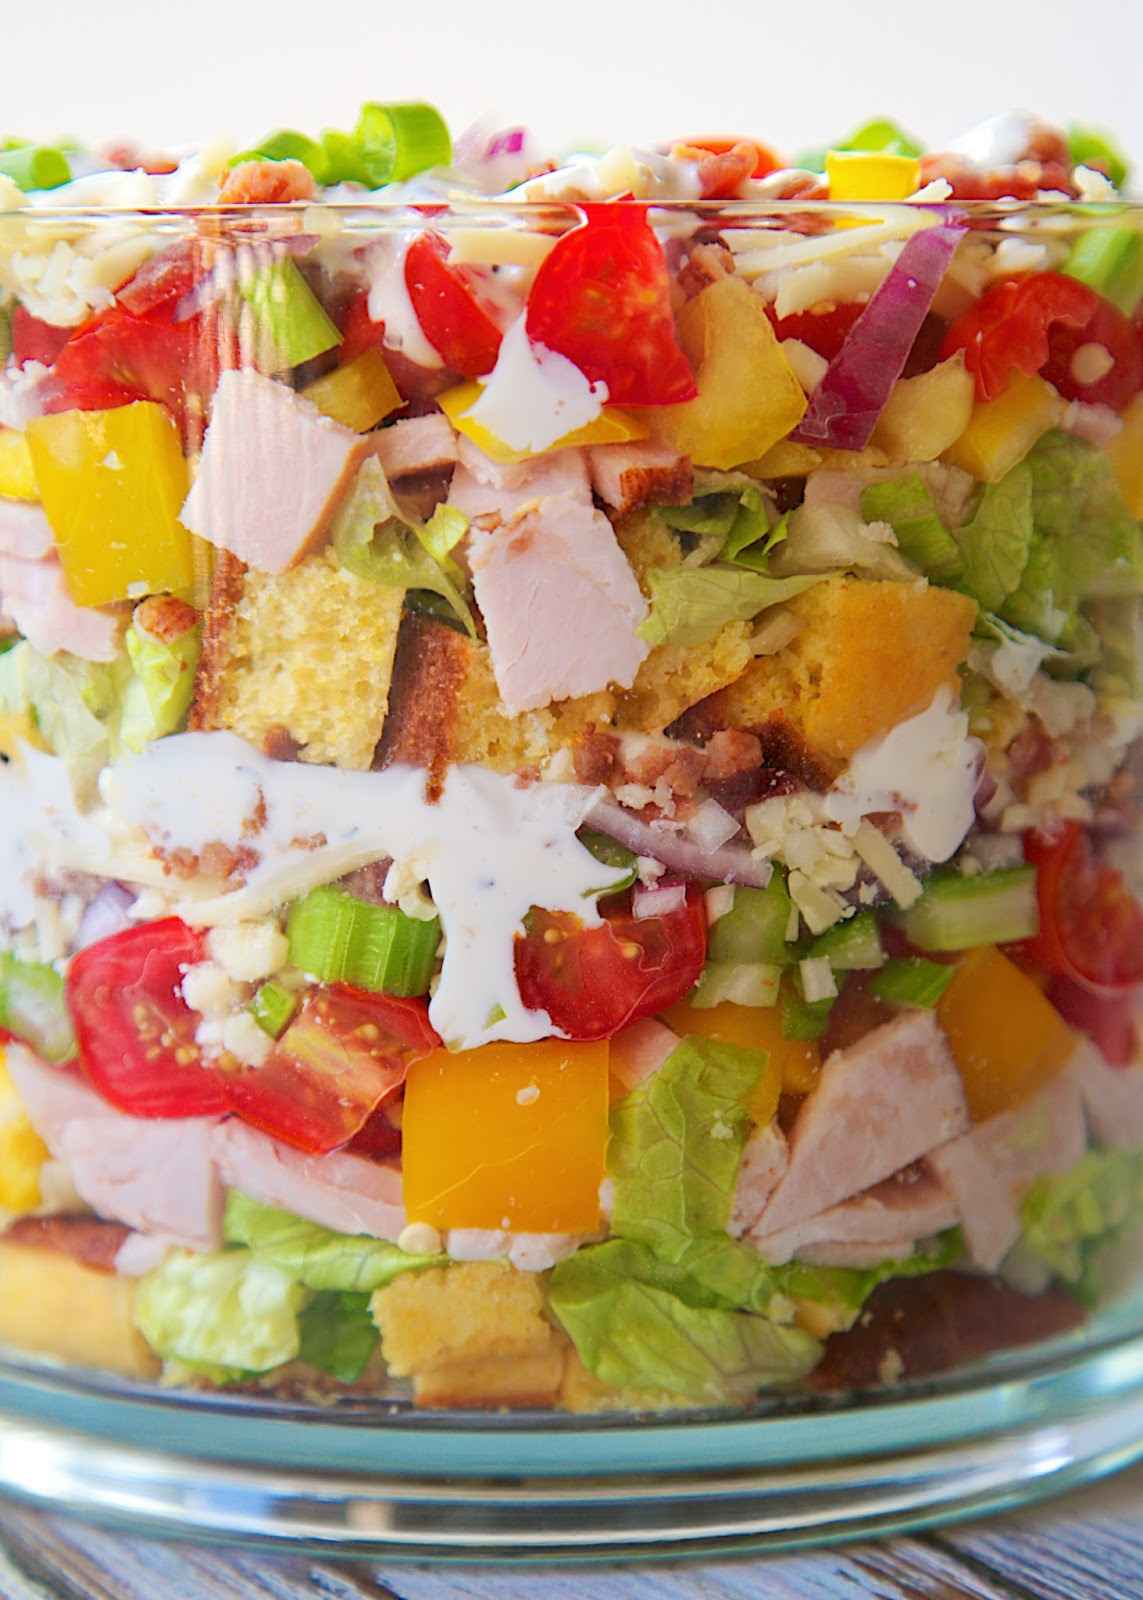 Cornbread & Turkey Layered Salad Recipe - loaded with cornbread, turkey, cheese, vegetables and bacon! It is a whole meal in one big bowl! Make ahead of time and refrigerate before serving. Can be made 24 hours in advance. Perfect for brunch/lunch.